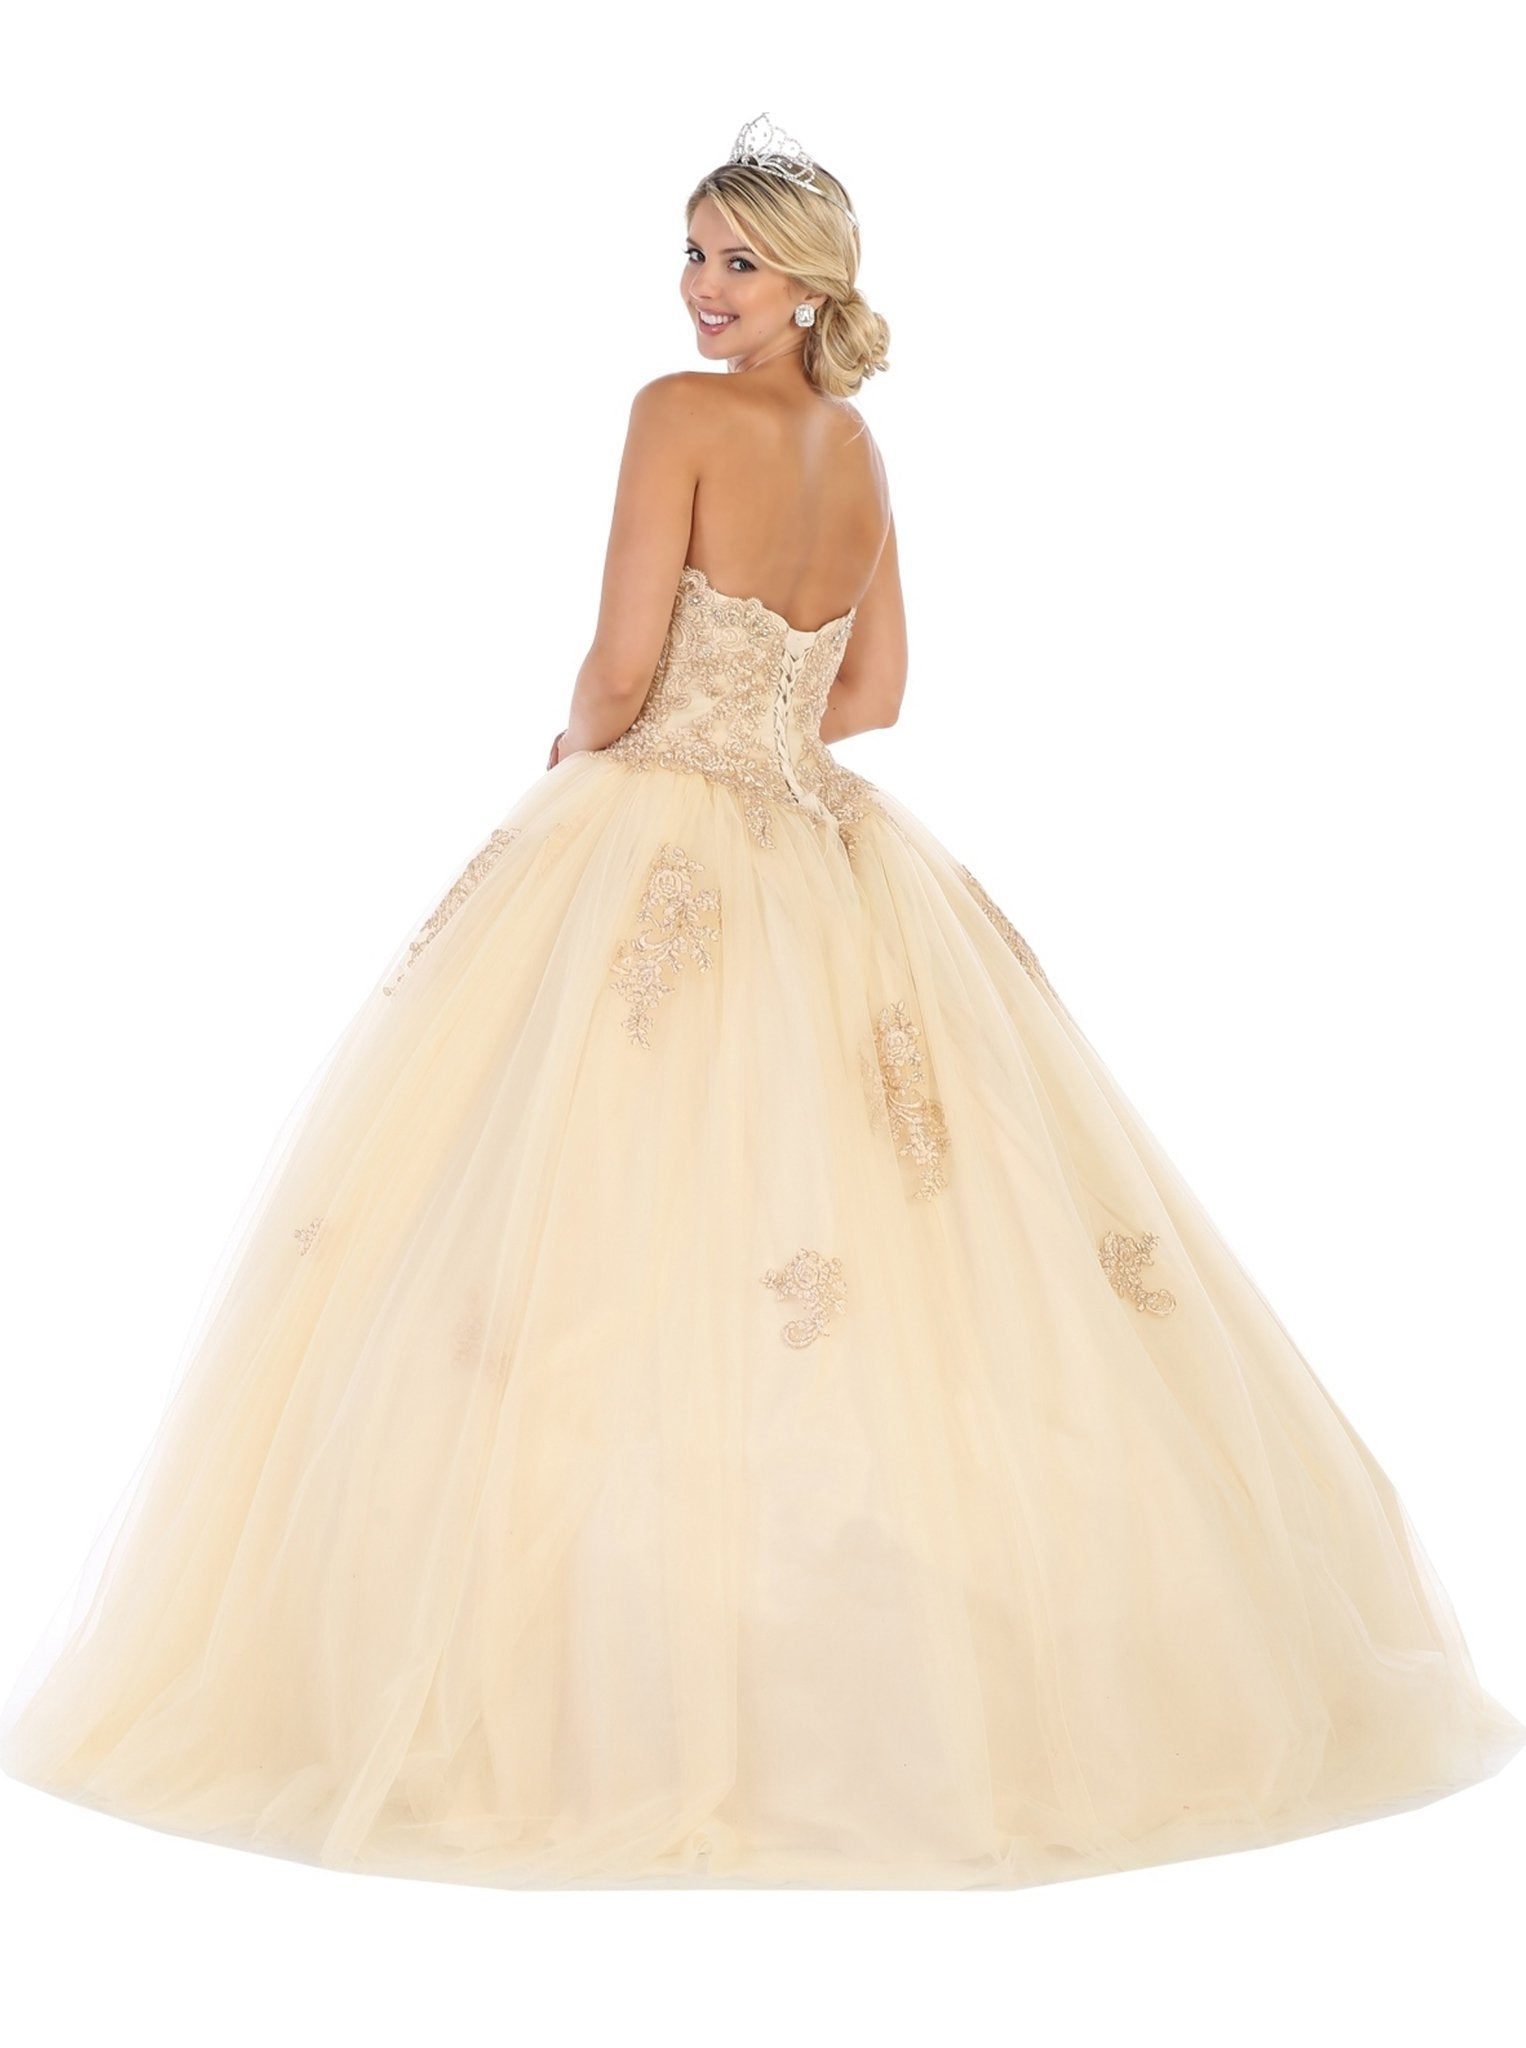 May Queen - Strapless Scalloped Appliqued Ballgown LK107 In Neutral